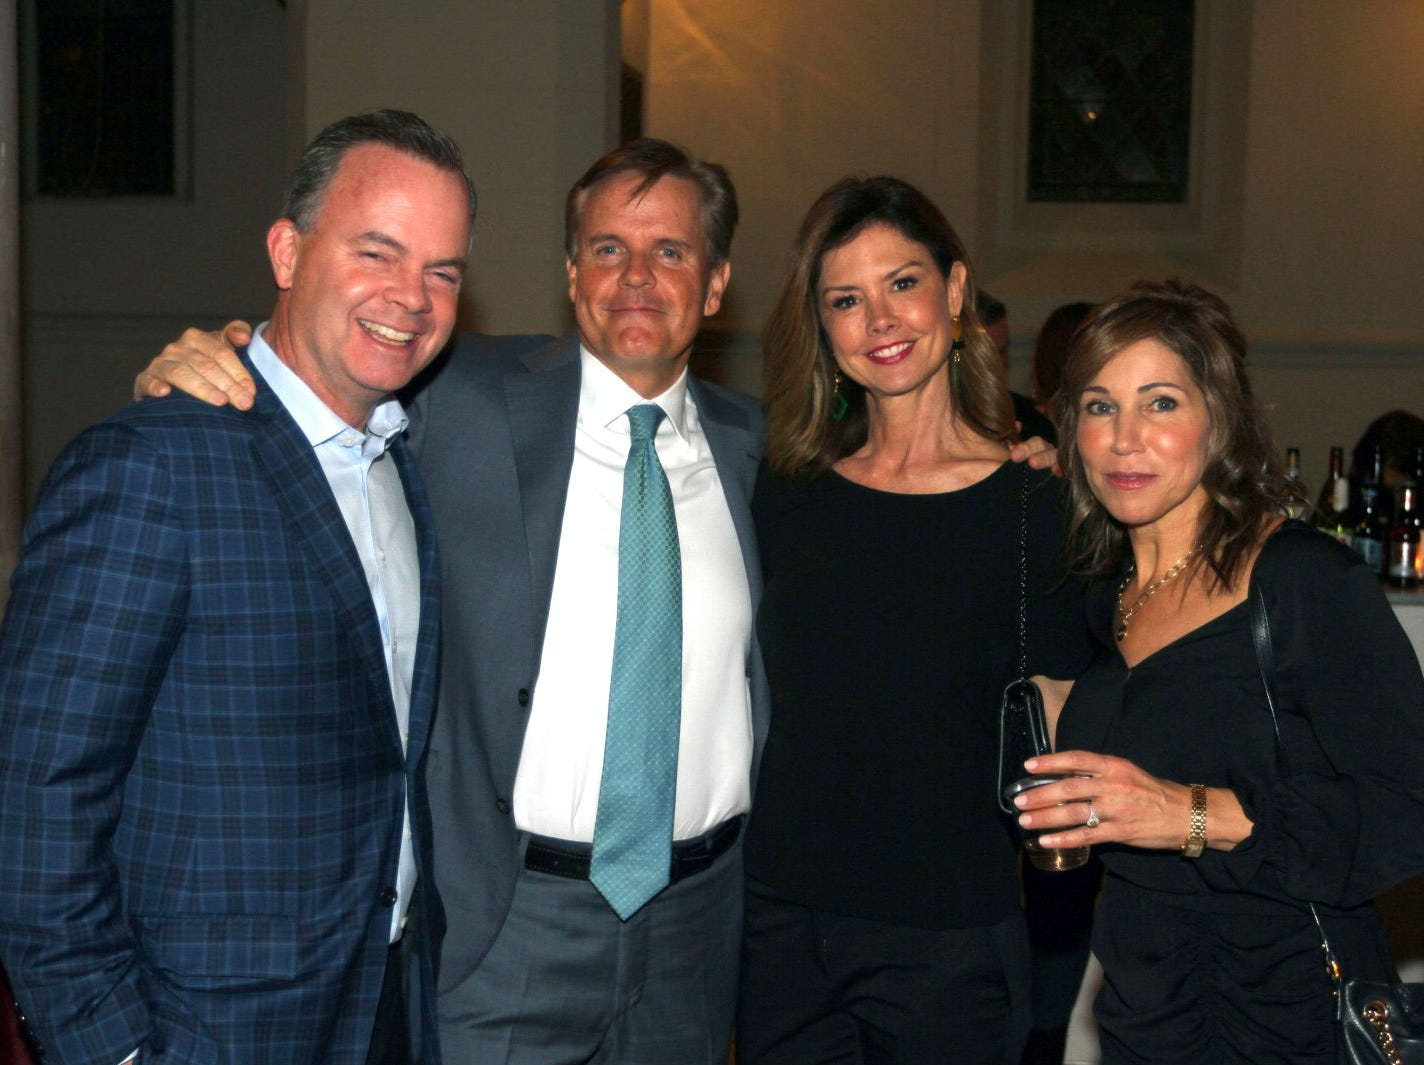 Ray Hopkins; Rob O'Shea; Marci Hopkins; Michele O'Shea. Wyckoff Family YMCA hosted its 75th anniversary gala to celebrate its benefactors, held at the Rio Vista seminary in Mahwah. 11/16/2018